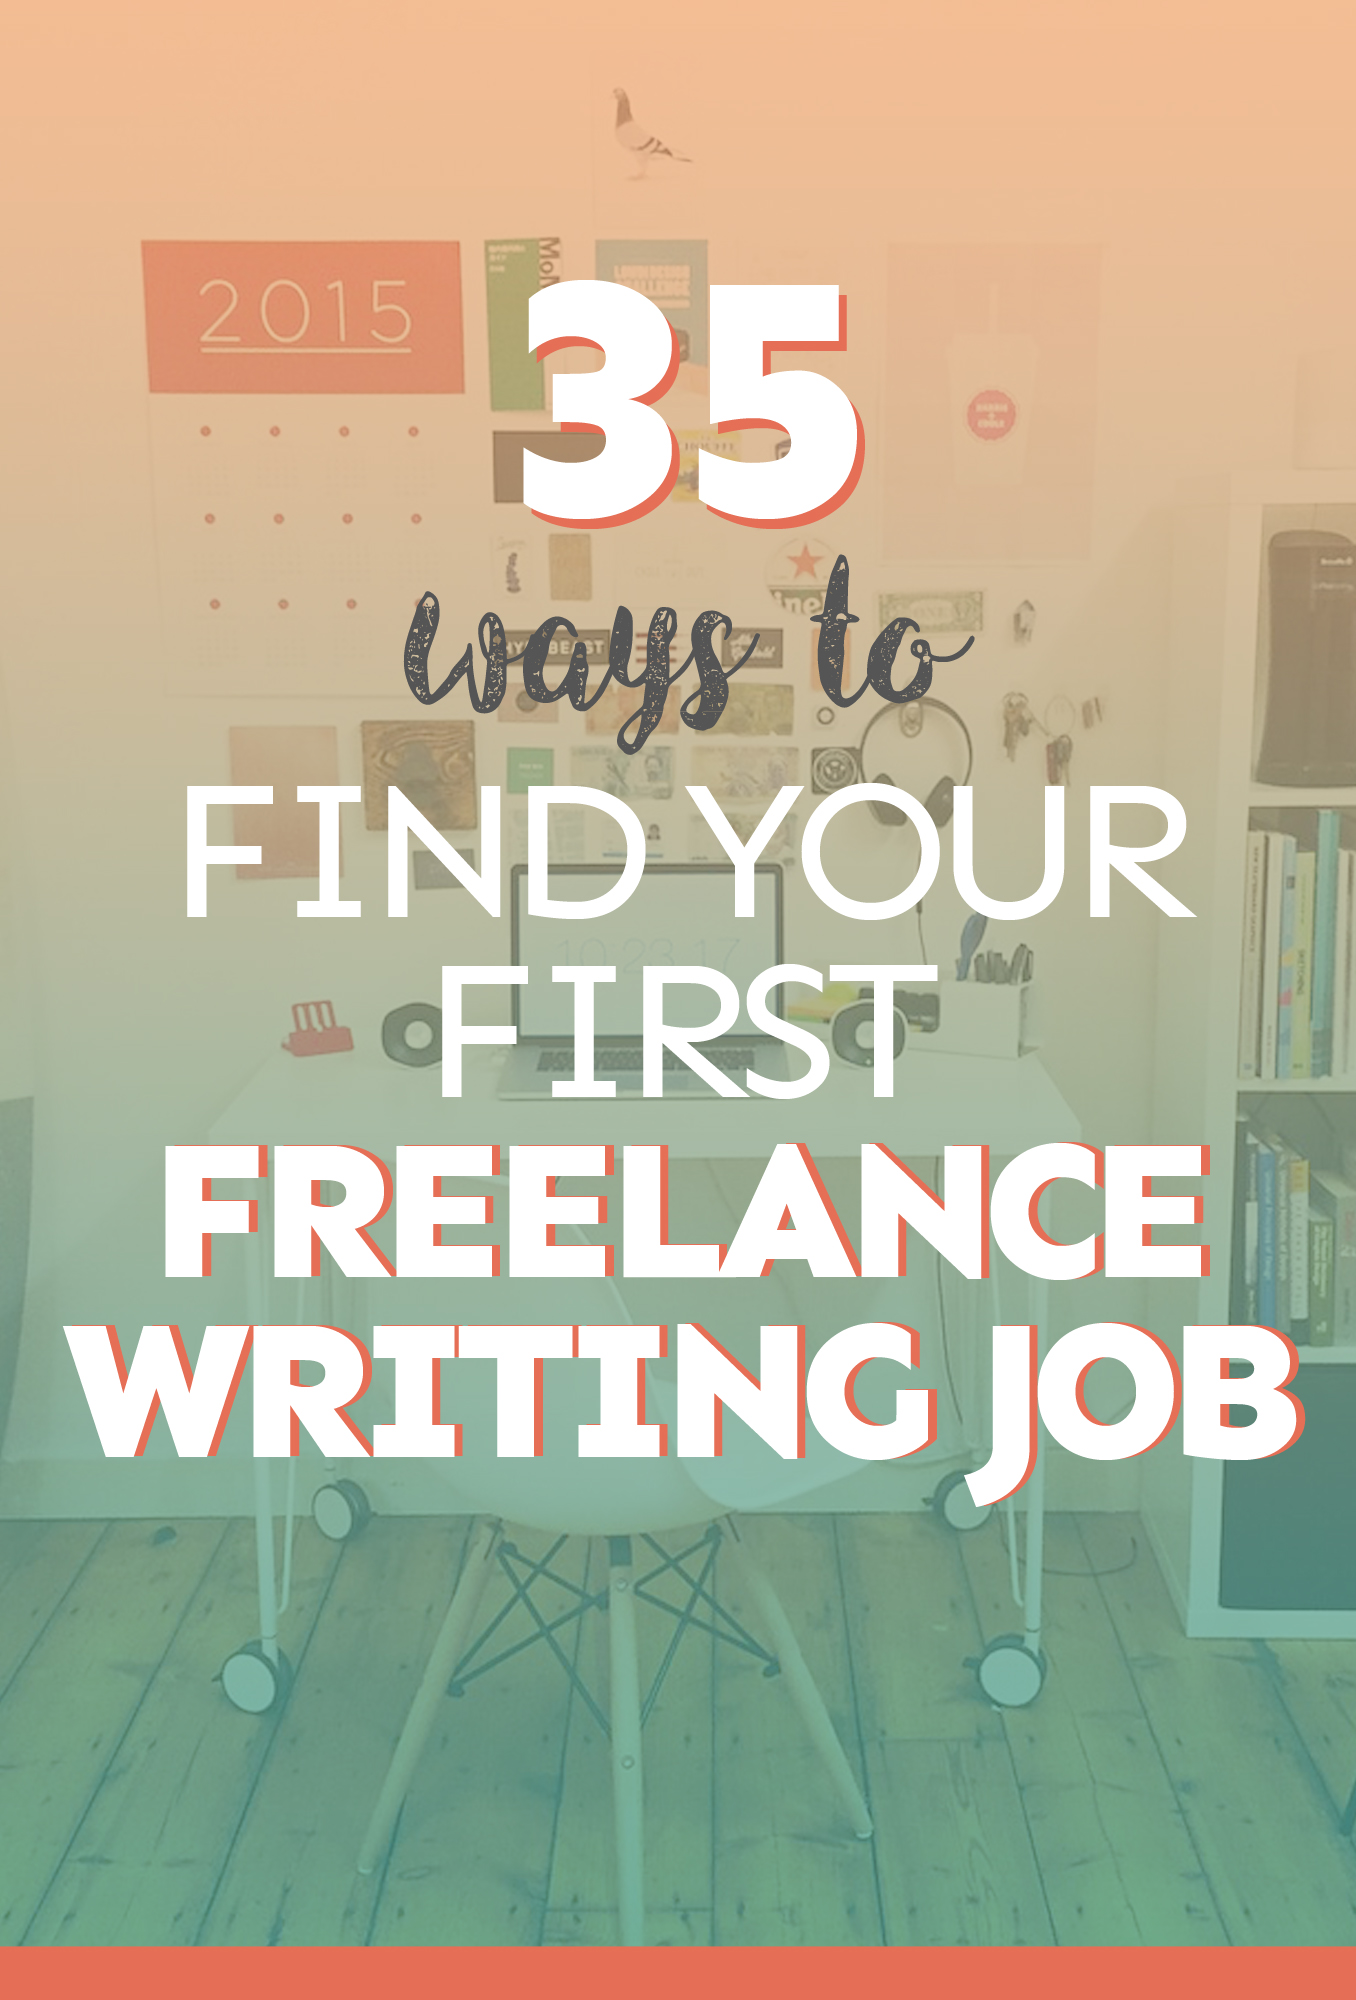 Find first freelance writing job